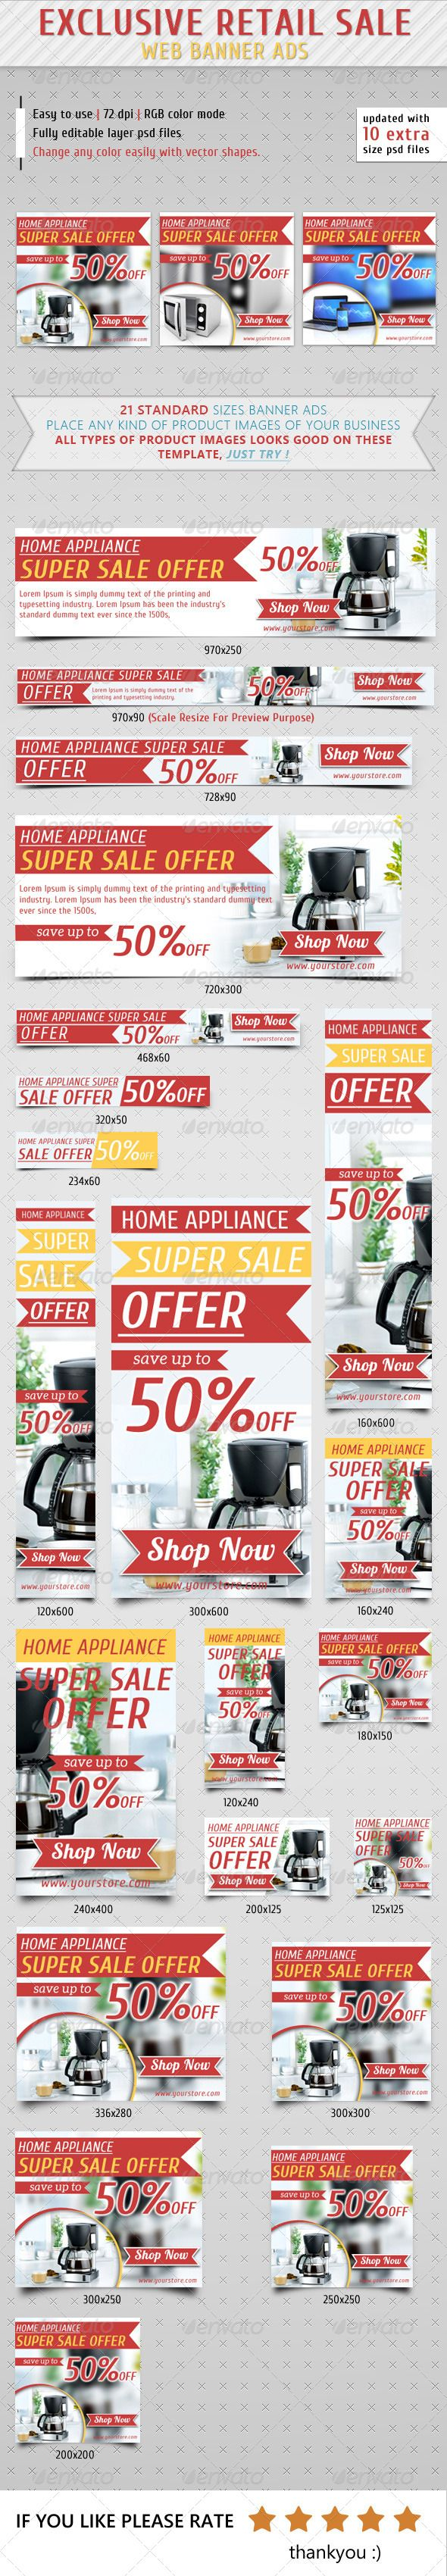 Retail Sale Web Banner Ads Template PSD | Buy and Download: http://graphicriver.net/item/retail-sale-web-banner-ads/7365260?WT.ac=category_thumb&WT.z_author=samiul75&ref=ksioks